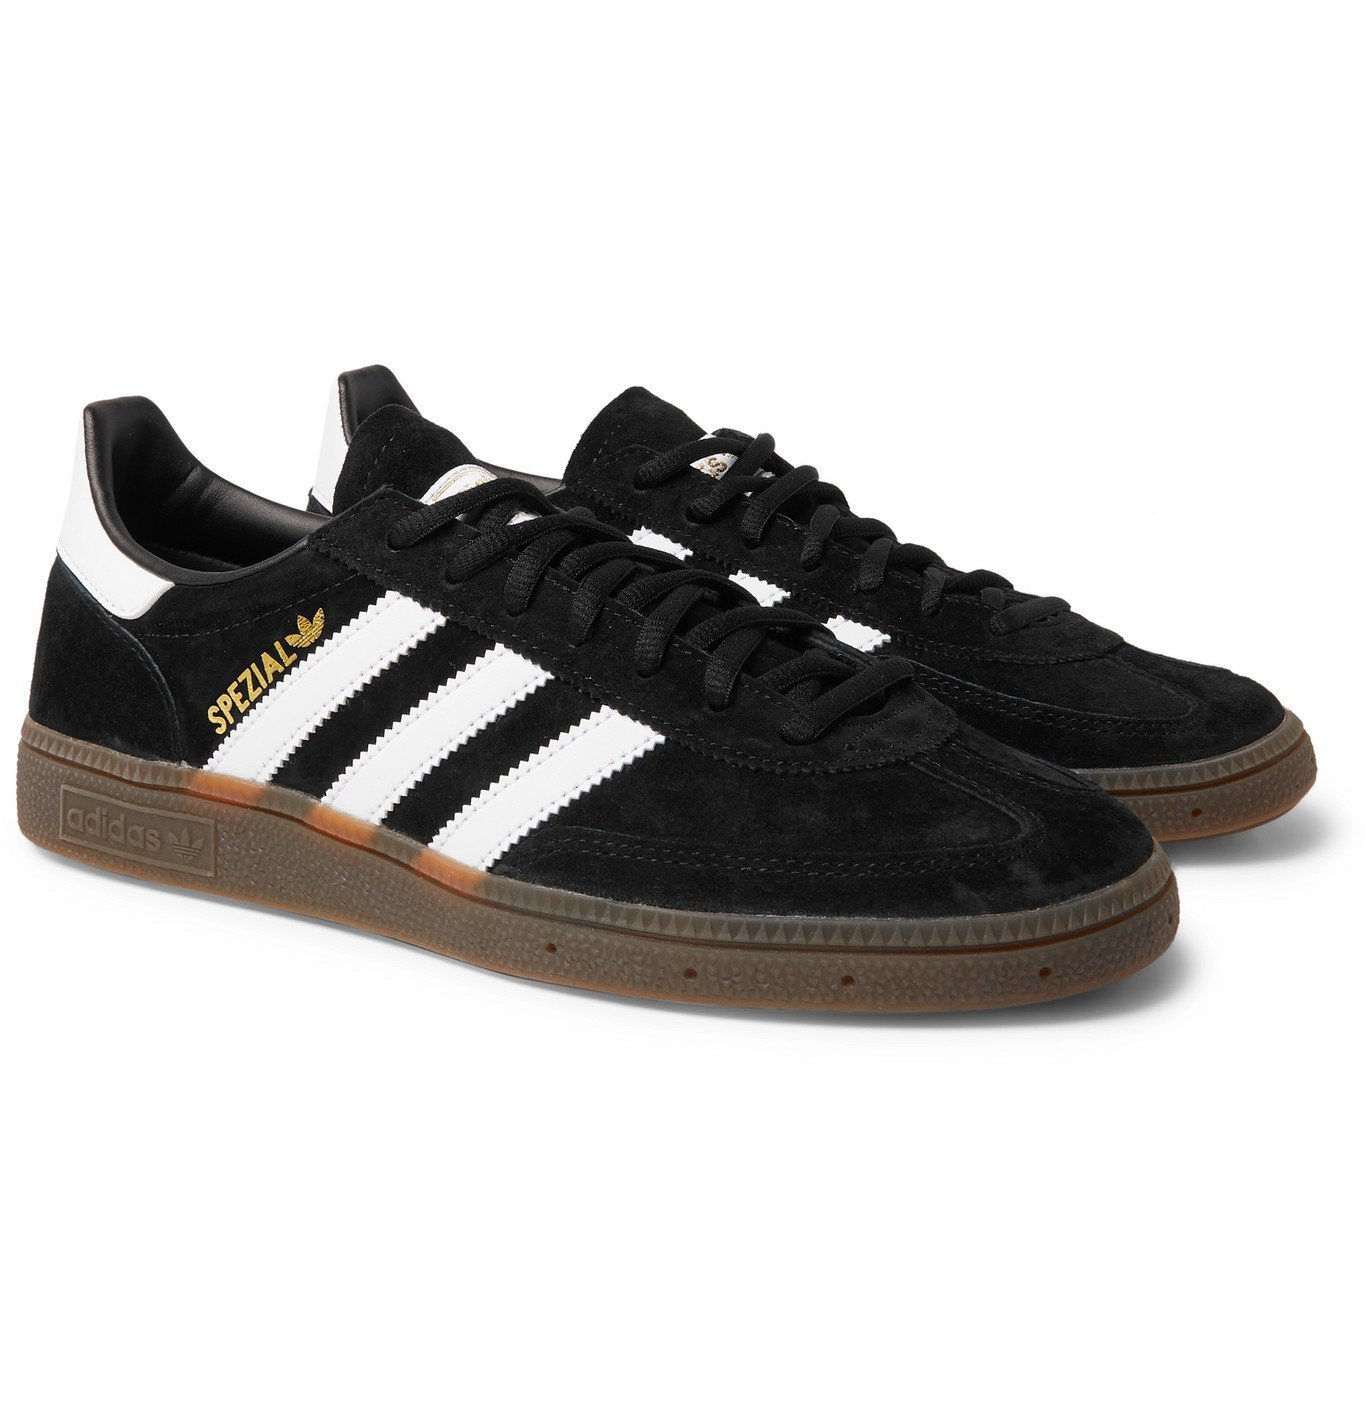 Handball Spezial Suede and Leather